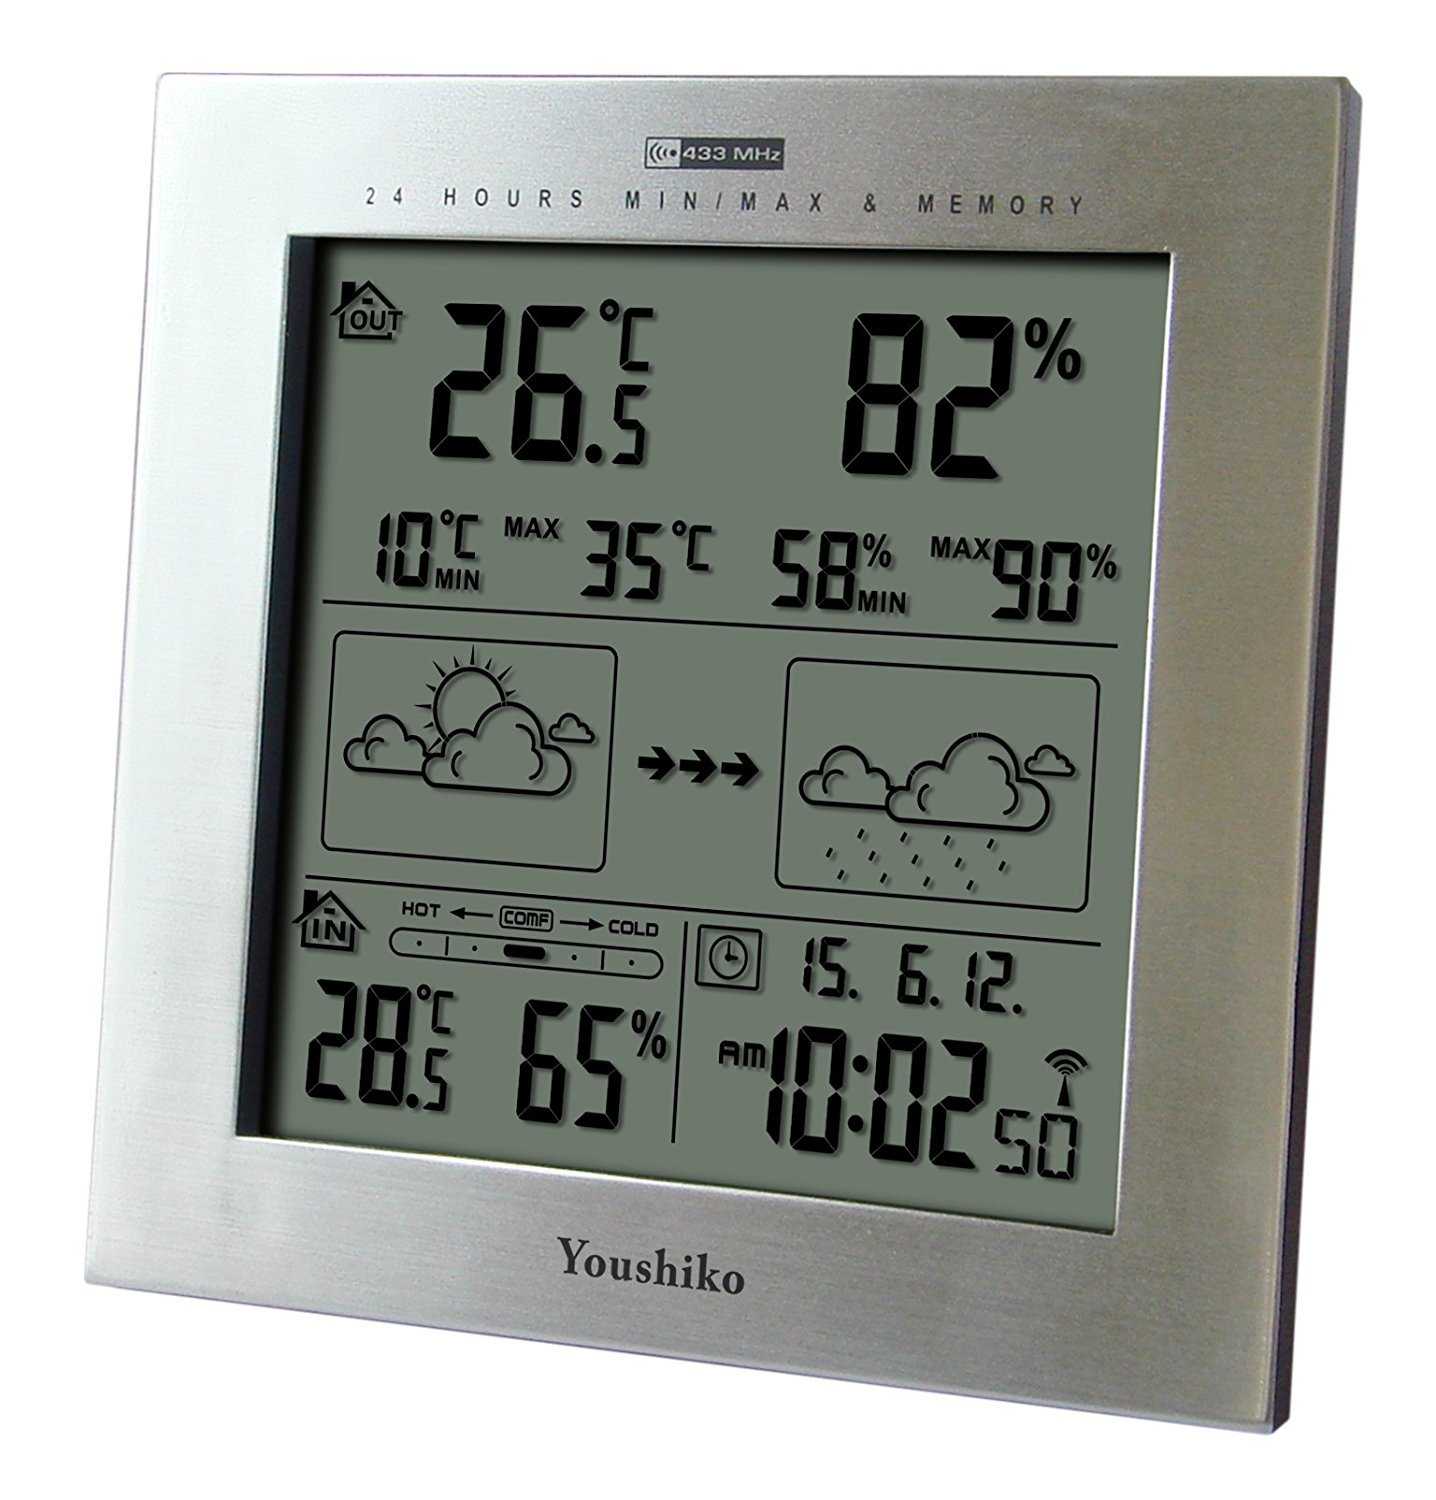 Youshiko Wireless Weather Station with Radio Controlled Clock ( UK Version ) , Indoor Outdoor Temperature Thermometer, Humidity, Date & Frost Alarm , Maximum & Minimum with 24 Hour Auto Reset YC9330